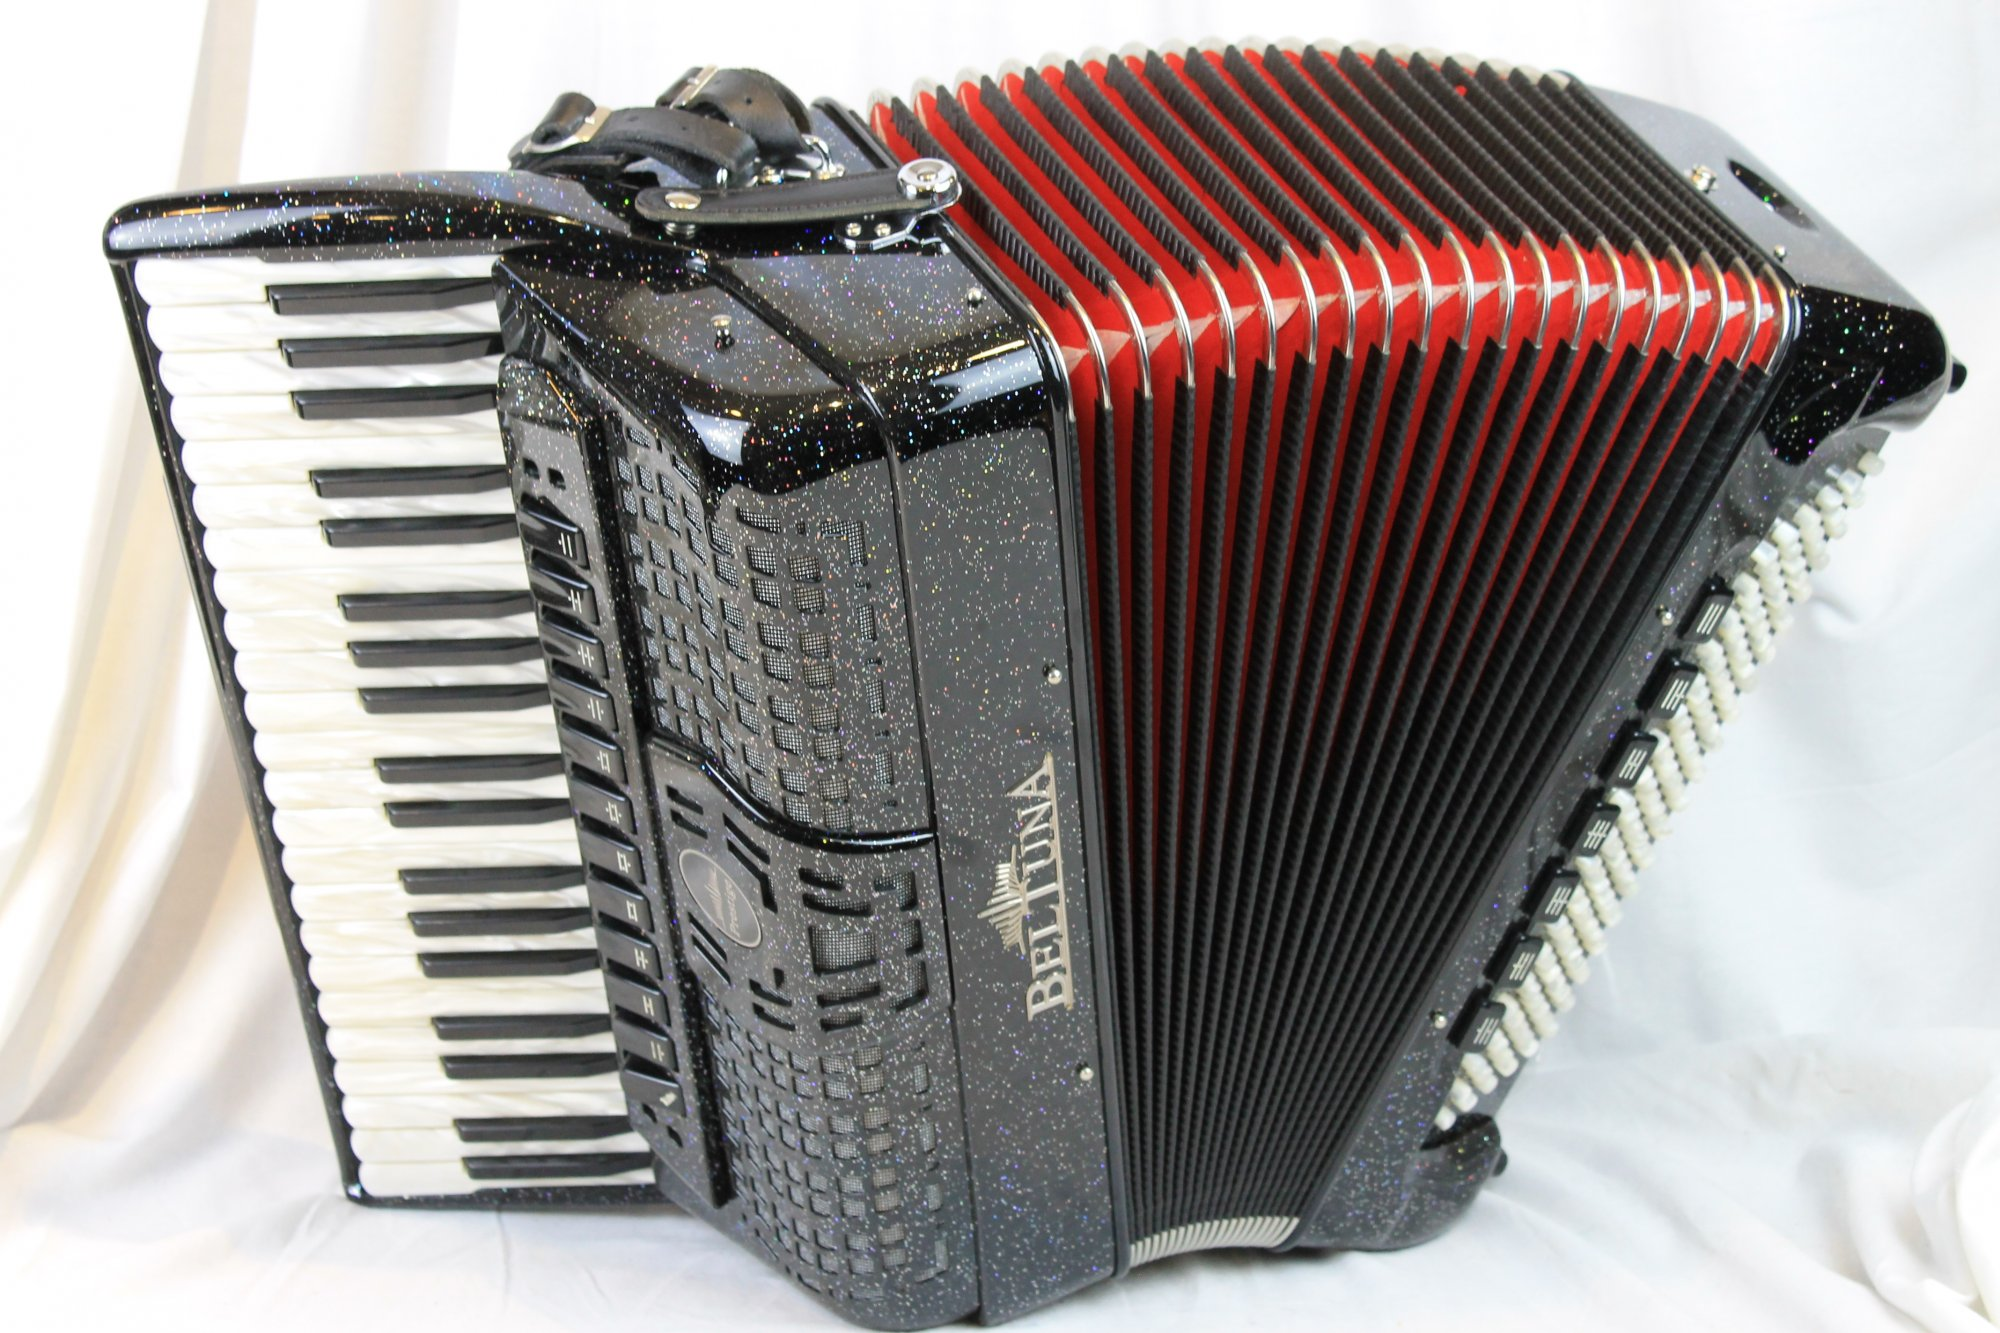 NEW Black Sparkle Beltuna Prestige IV Piano Accordion LMMH 41 120